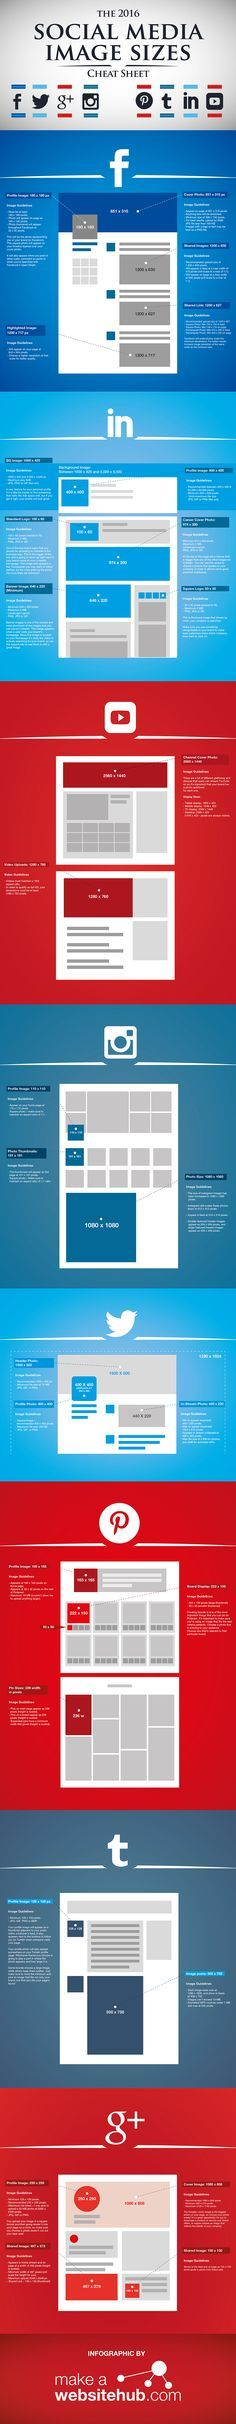 Was sind die aktuellen, typischen Social Media Bildgrößen 2016 ?! | Check the actual social media image sizes 2016 in this cheat sheet ! #infographic #Infografik #Marketing #PR #SocialMedia #howto #smb #KMU #Wissen